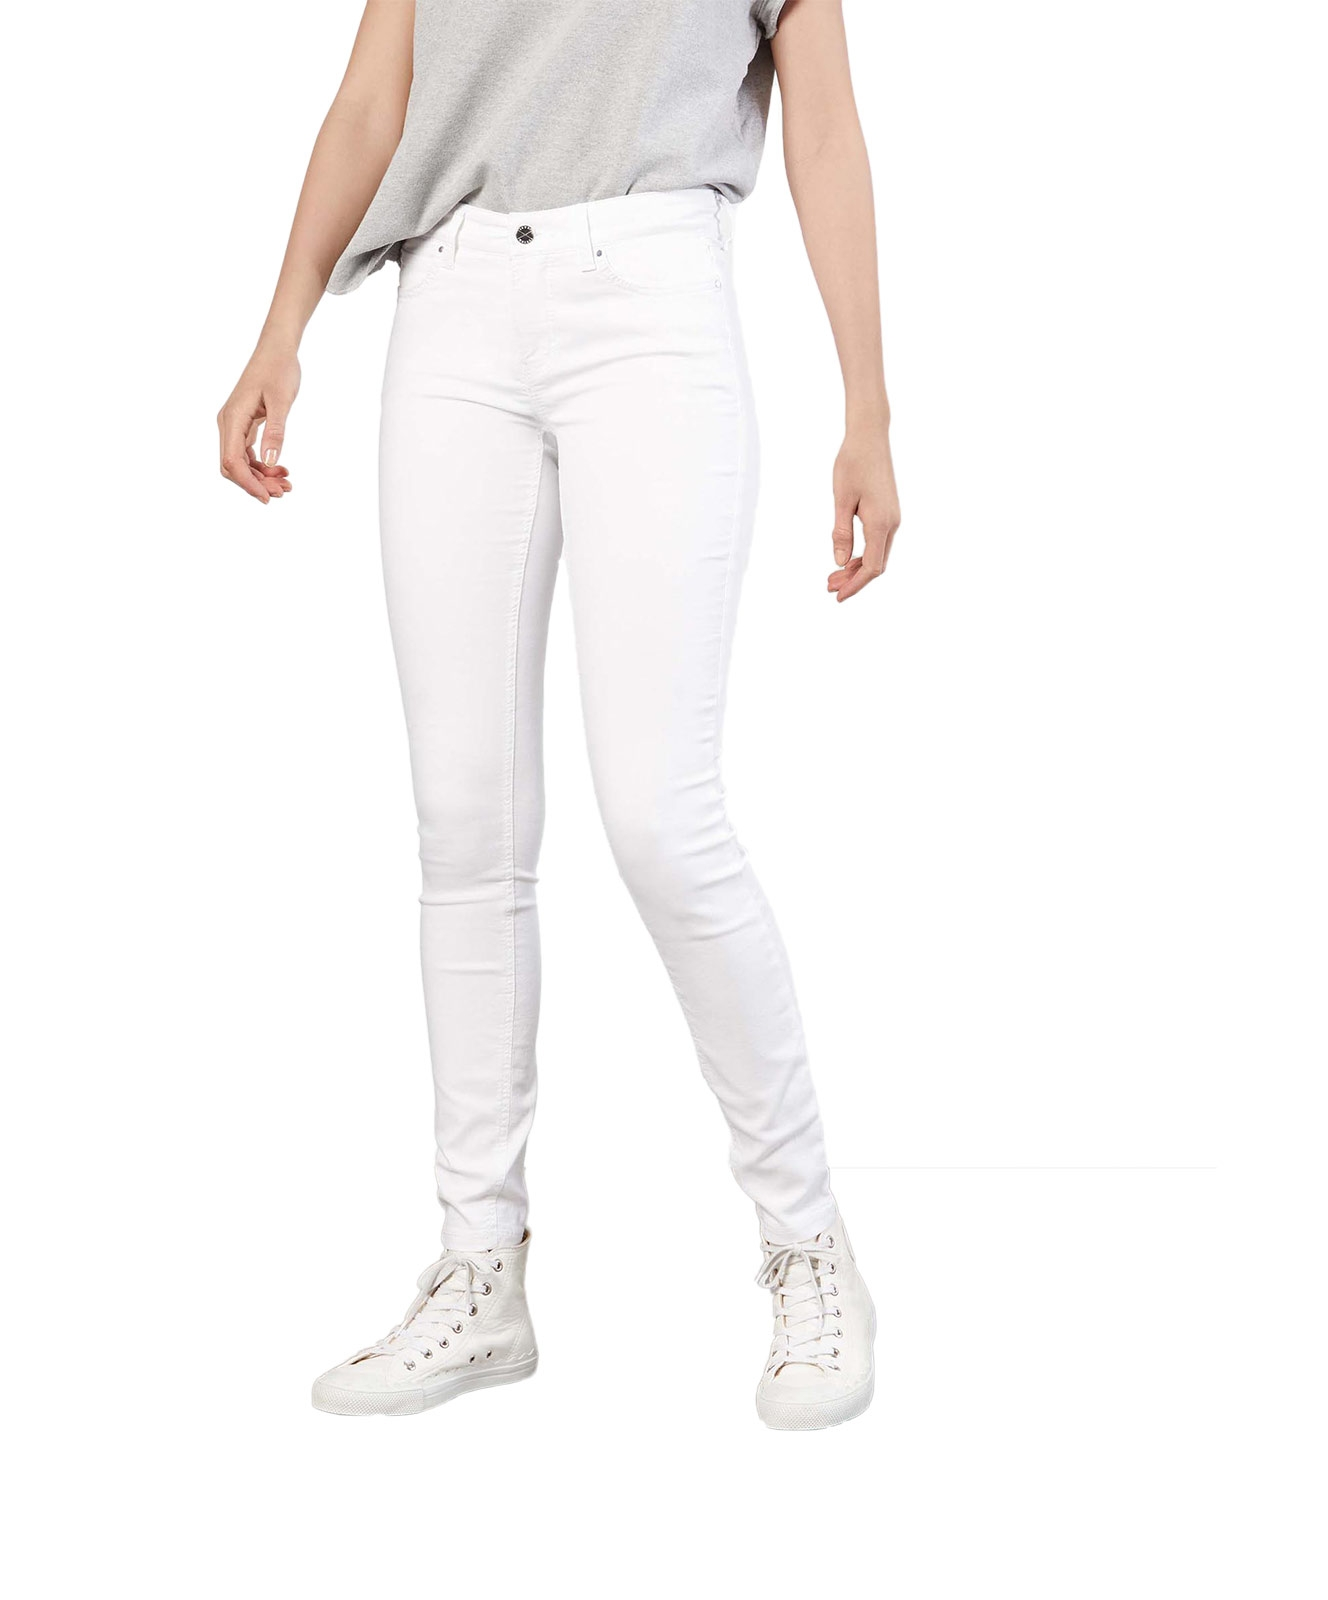 Hosen - MAC Jeans Röhre Dream Skinny in White Denim  - Onlineshop Jeans Meile